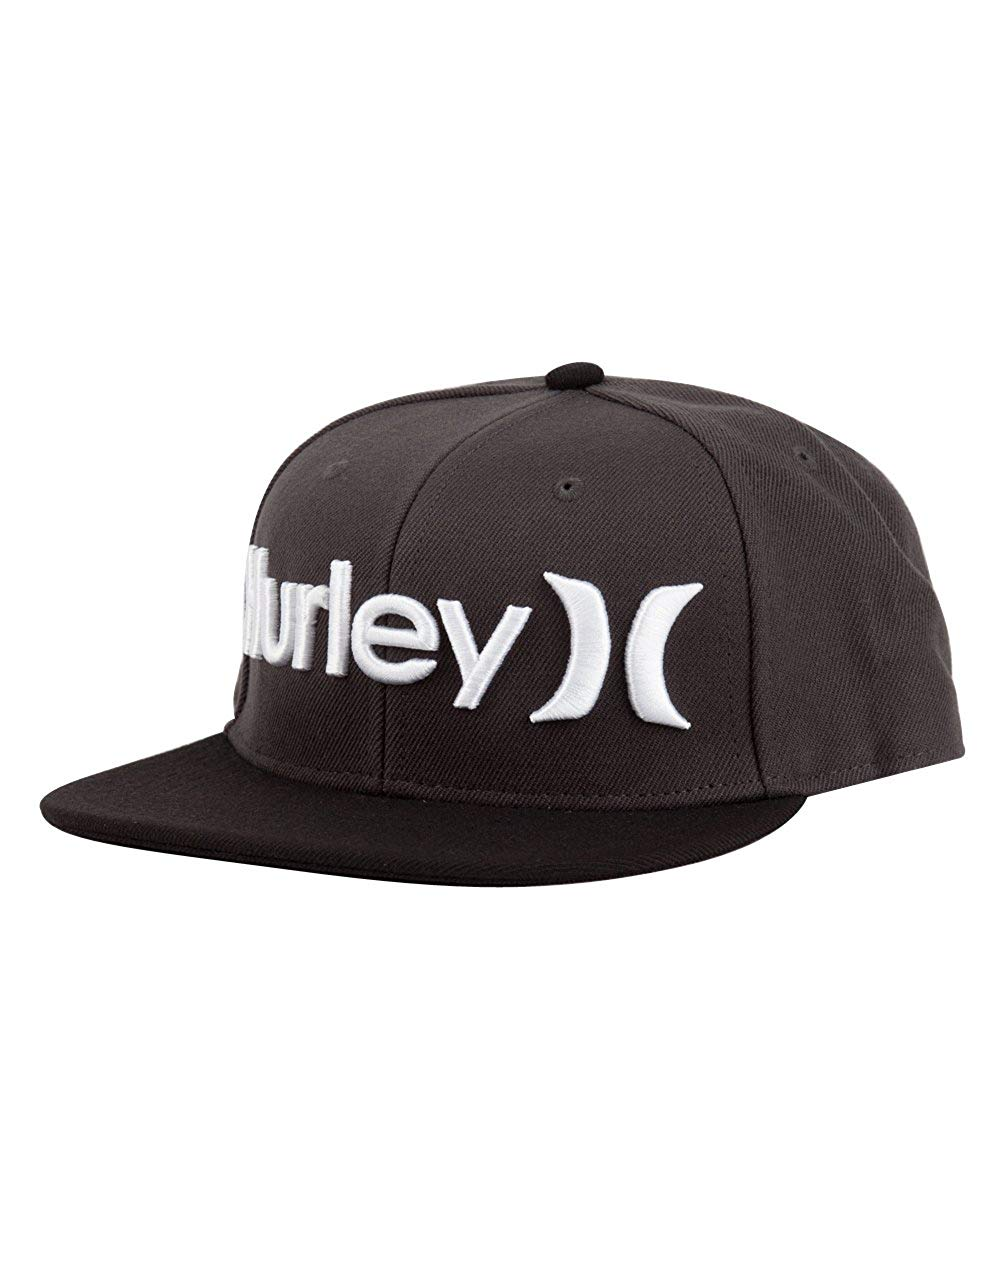 1a894234cfa Get Quotations · Hurley One and Only Boys Snapback Hat 8 20